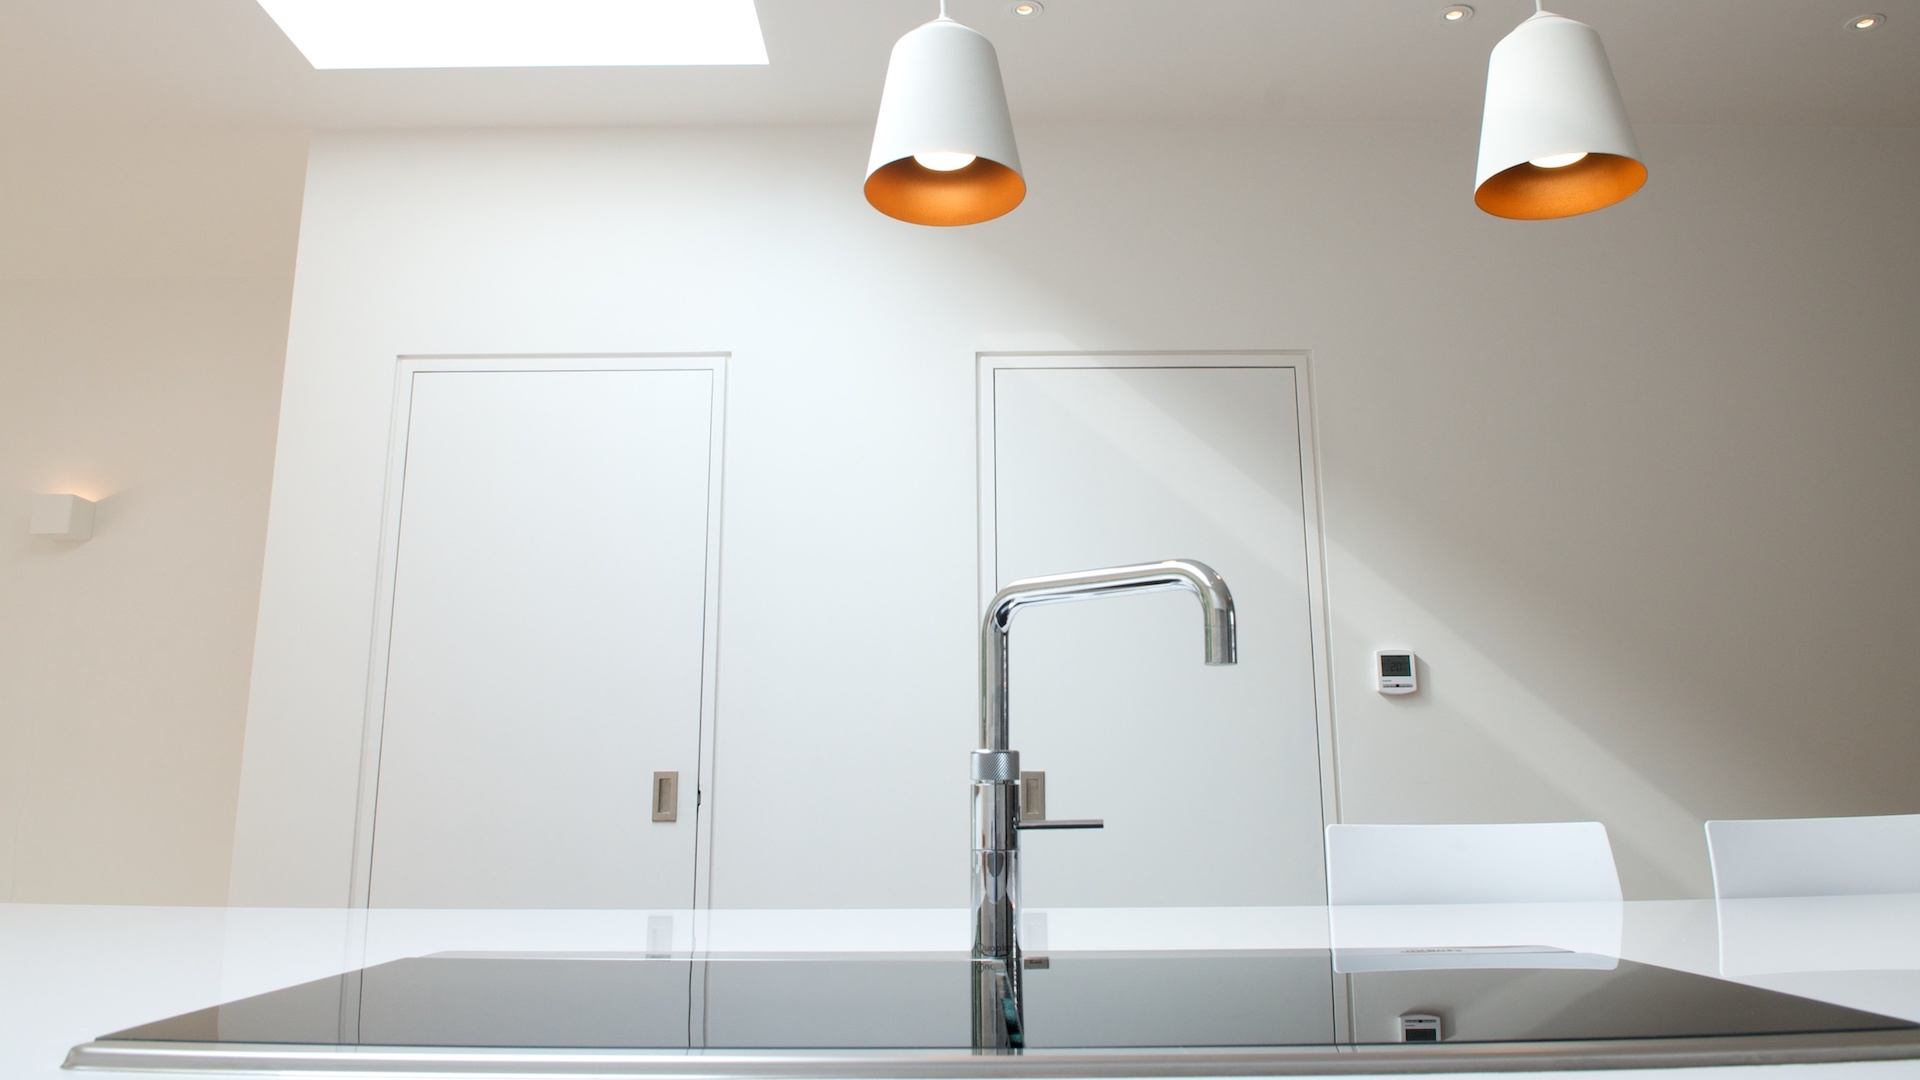 Modern sink with tap and lights above with orange detail inside.